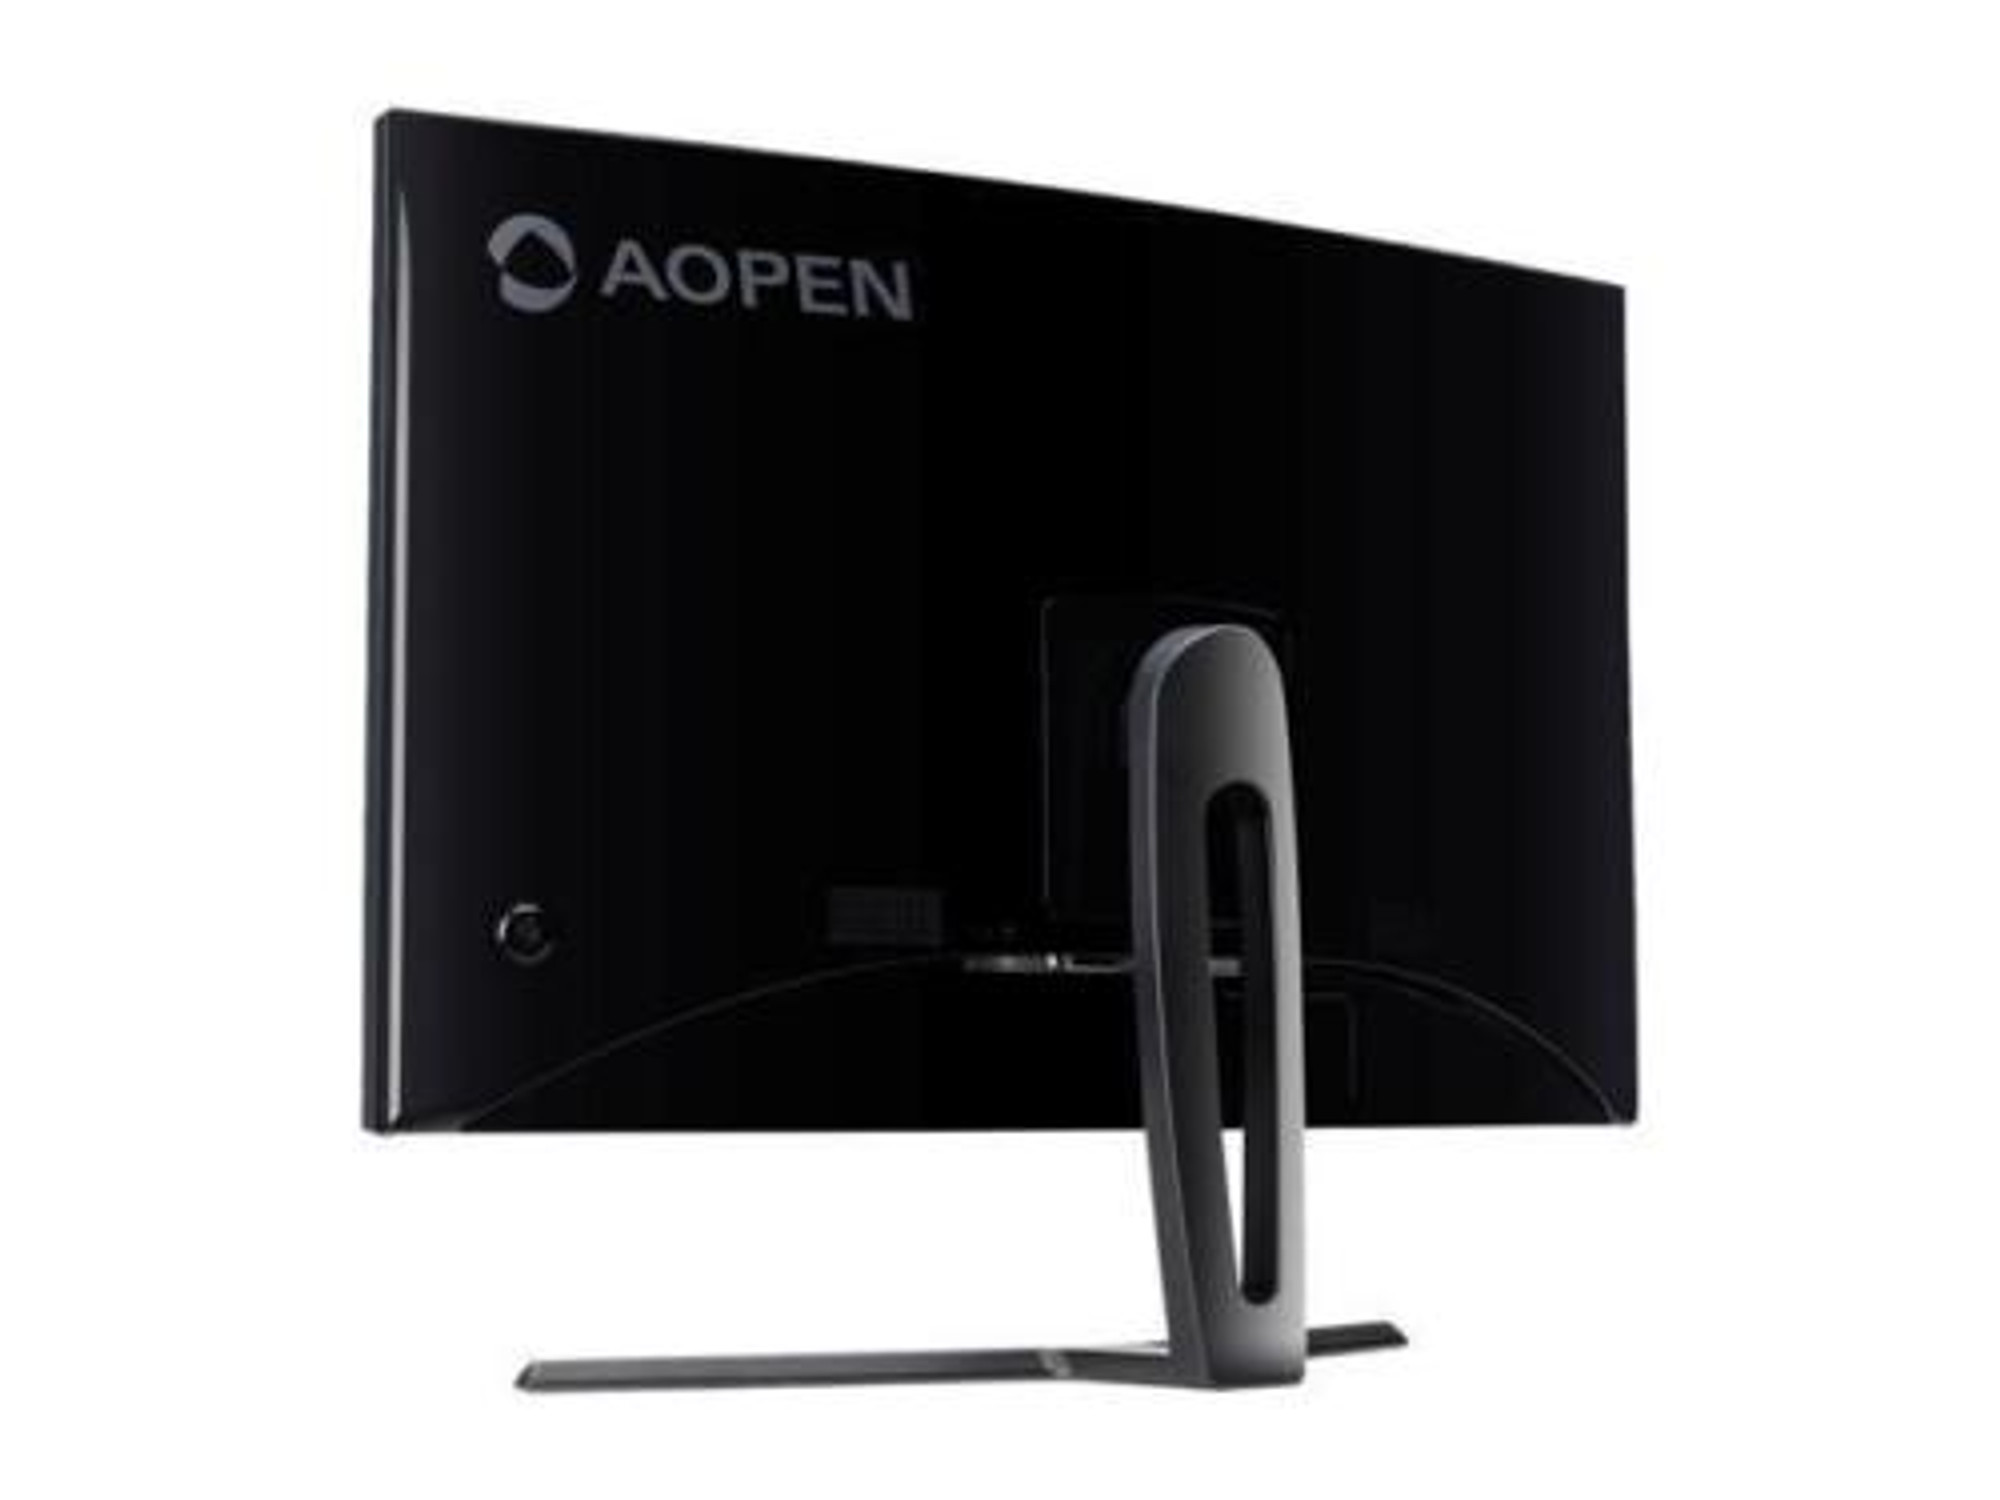 Aopen Hc1 Series 27 Curved Gaming Monitor Amd Freesync 1920x1080 4ms 144hz